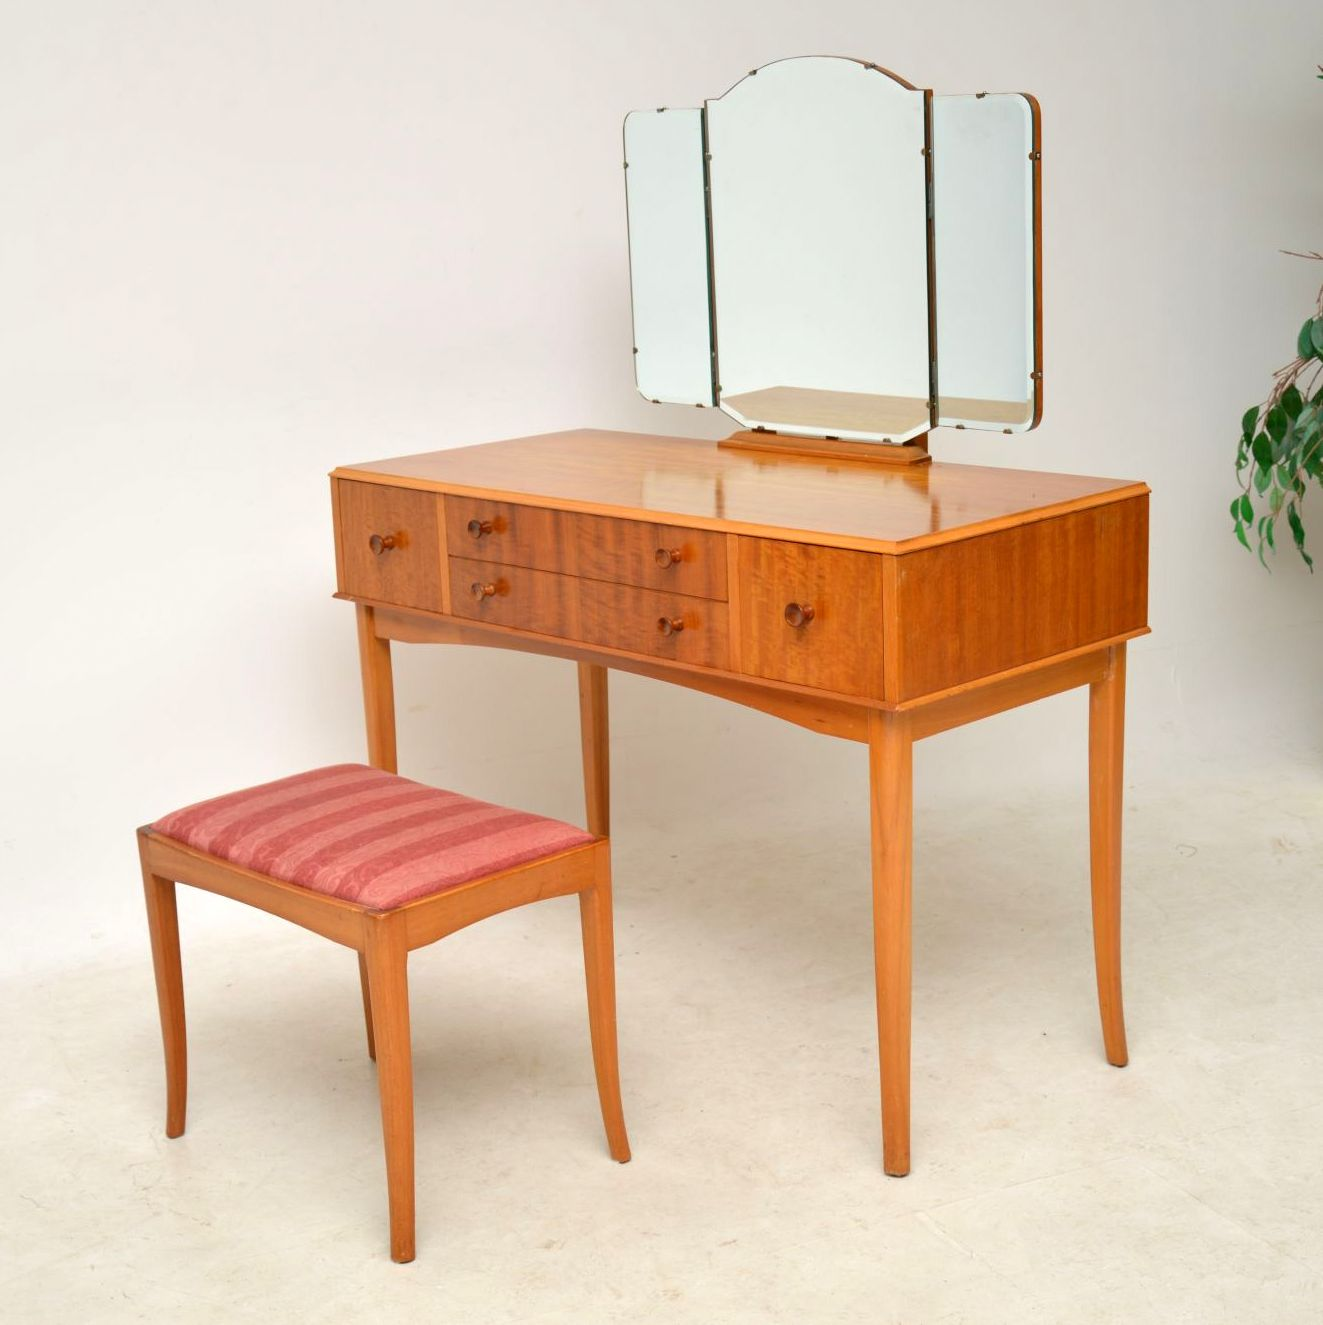 Table Dressing Wood 1950 Scarved ~ S satin wood dressing table stool retrospective